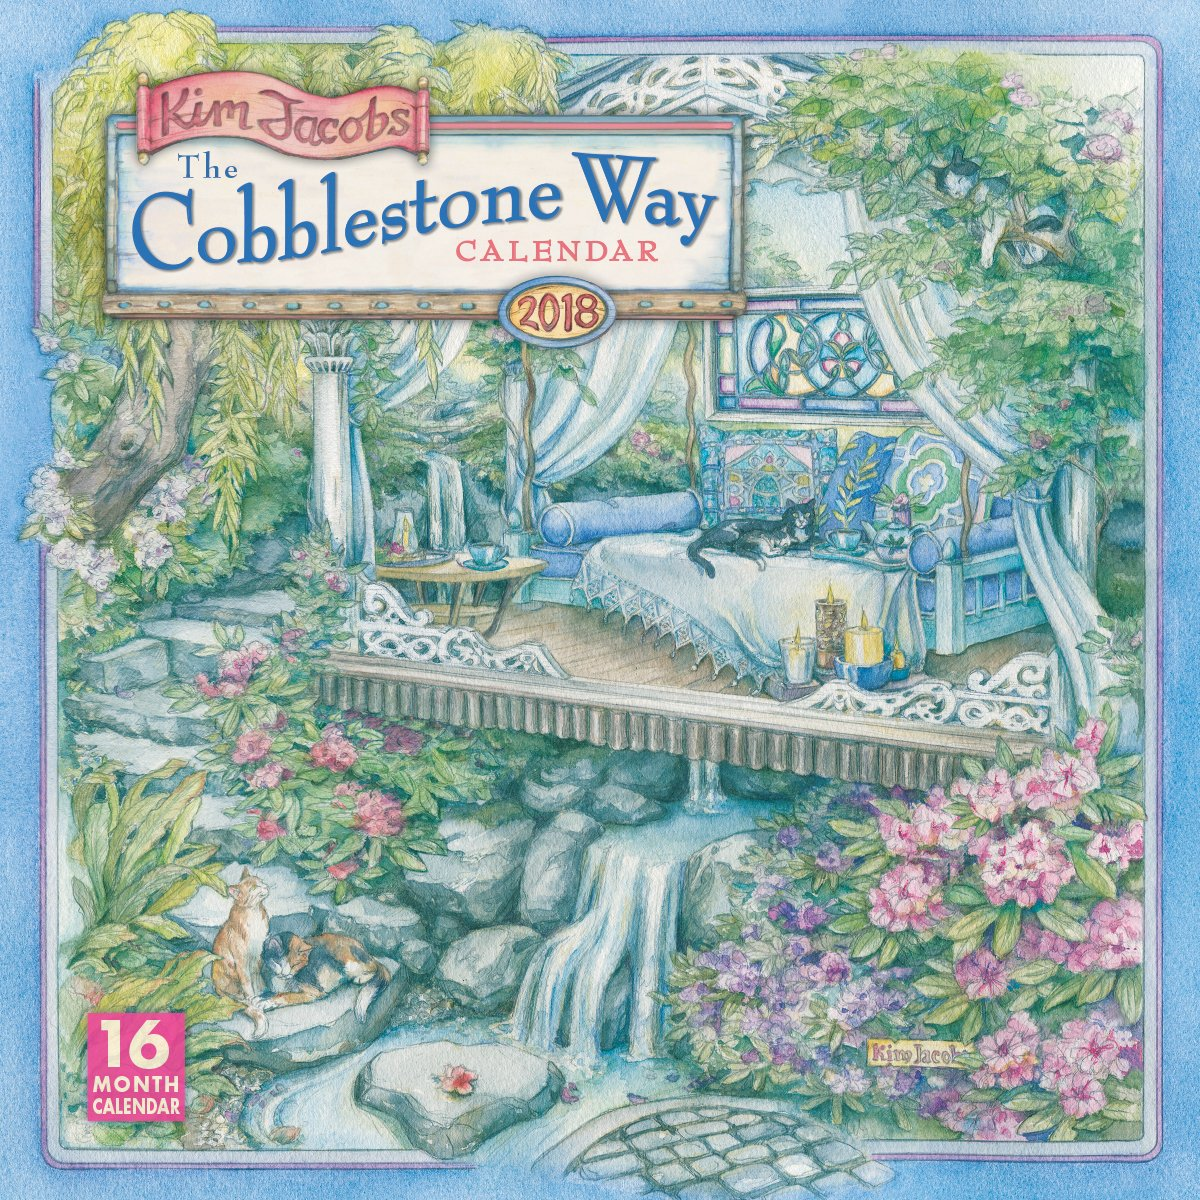 The Cobblestone Way - Kim Jacobs 2018 Wall Calendar (CA0118): Kim ...